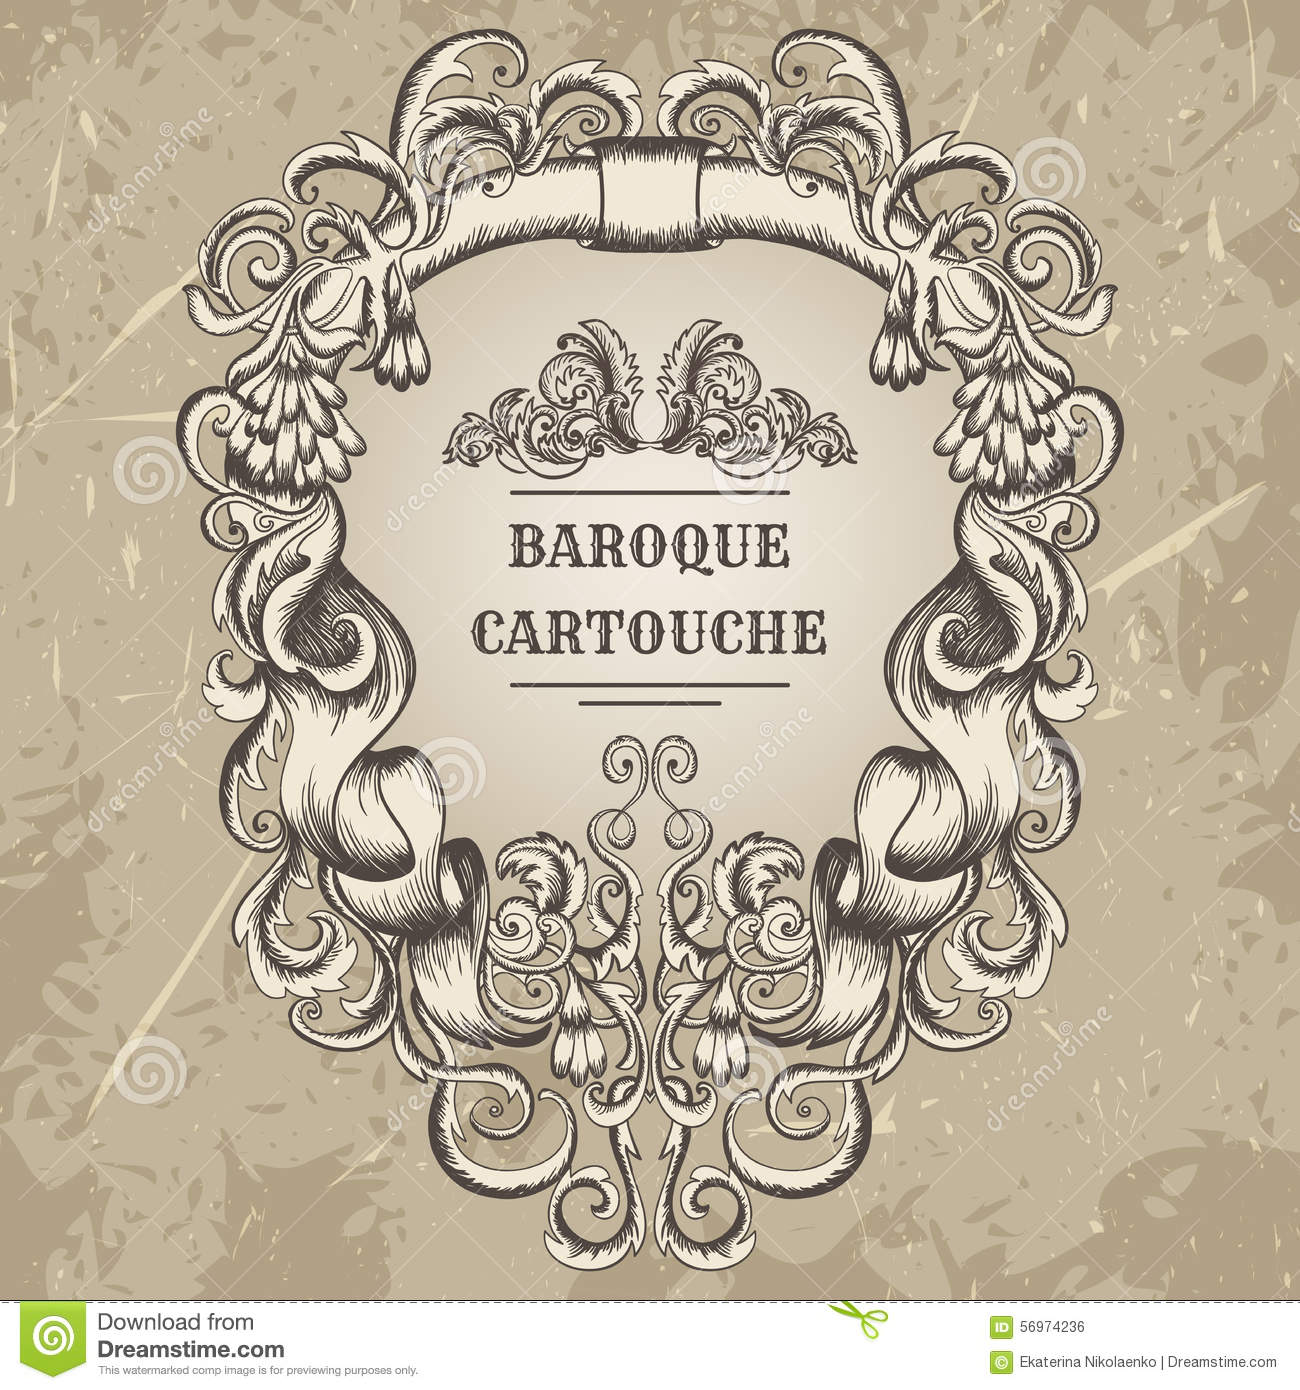 Antique and baroque cartouche ornaments frame vintage for Baroque architecture elements